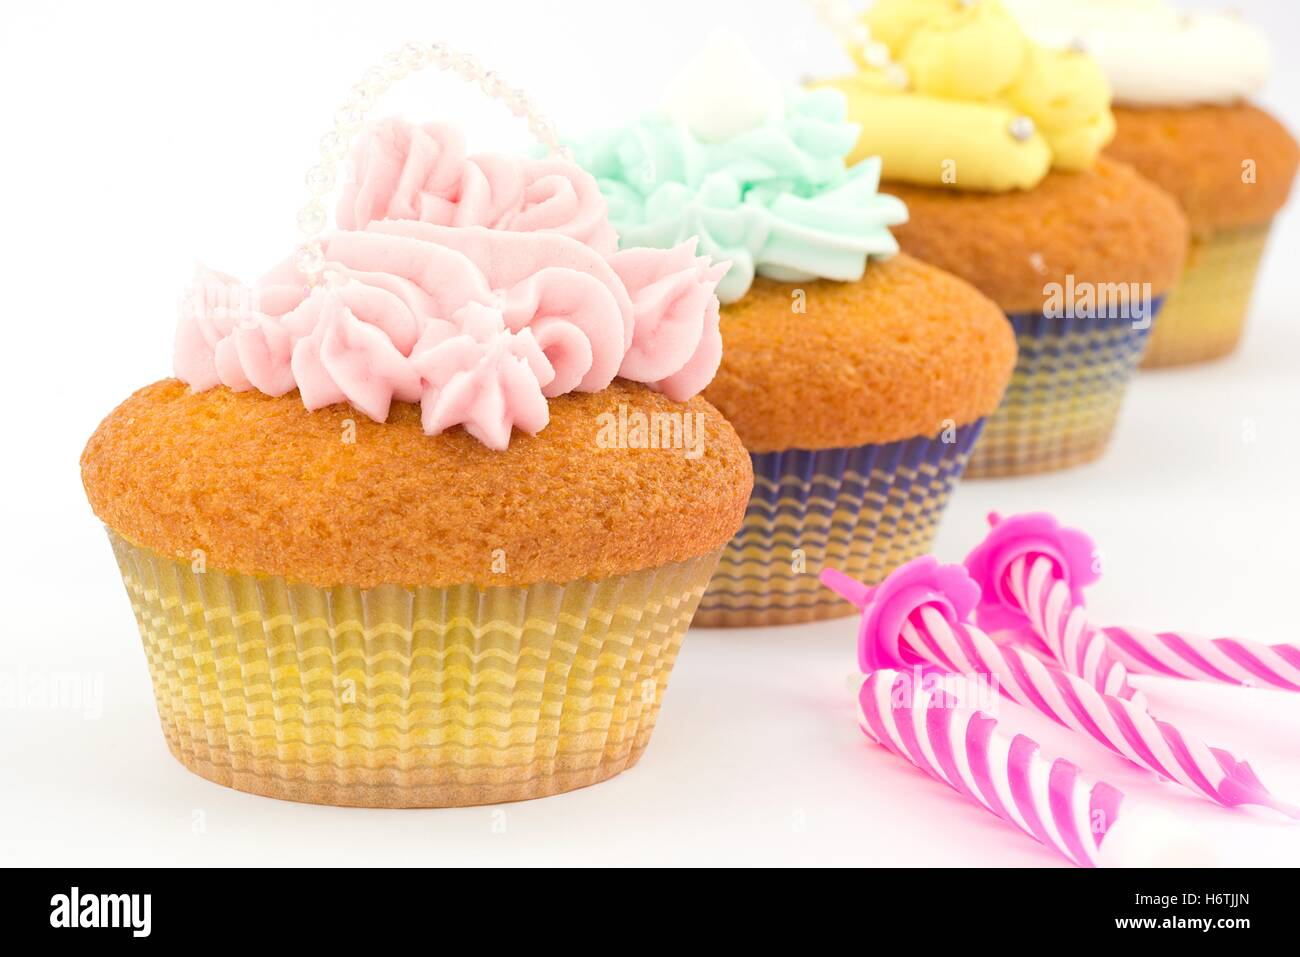 cake, pie, cakes, cupcakes, food, aliment, sweet, sweets, celebrate, reveling, - Stock Image